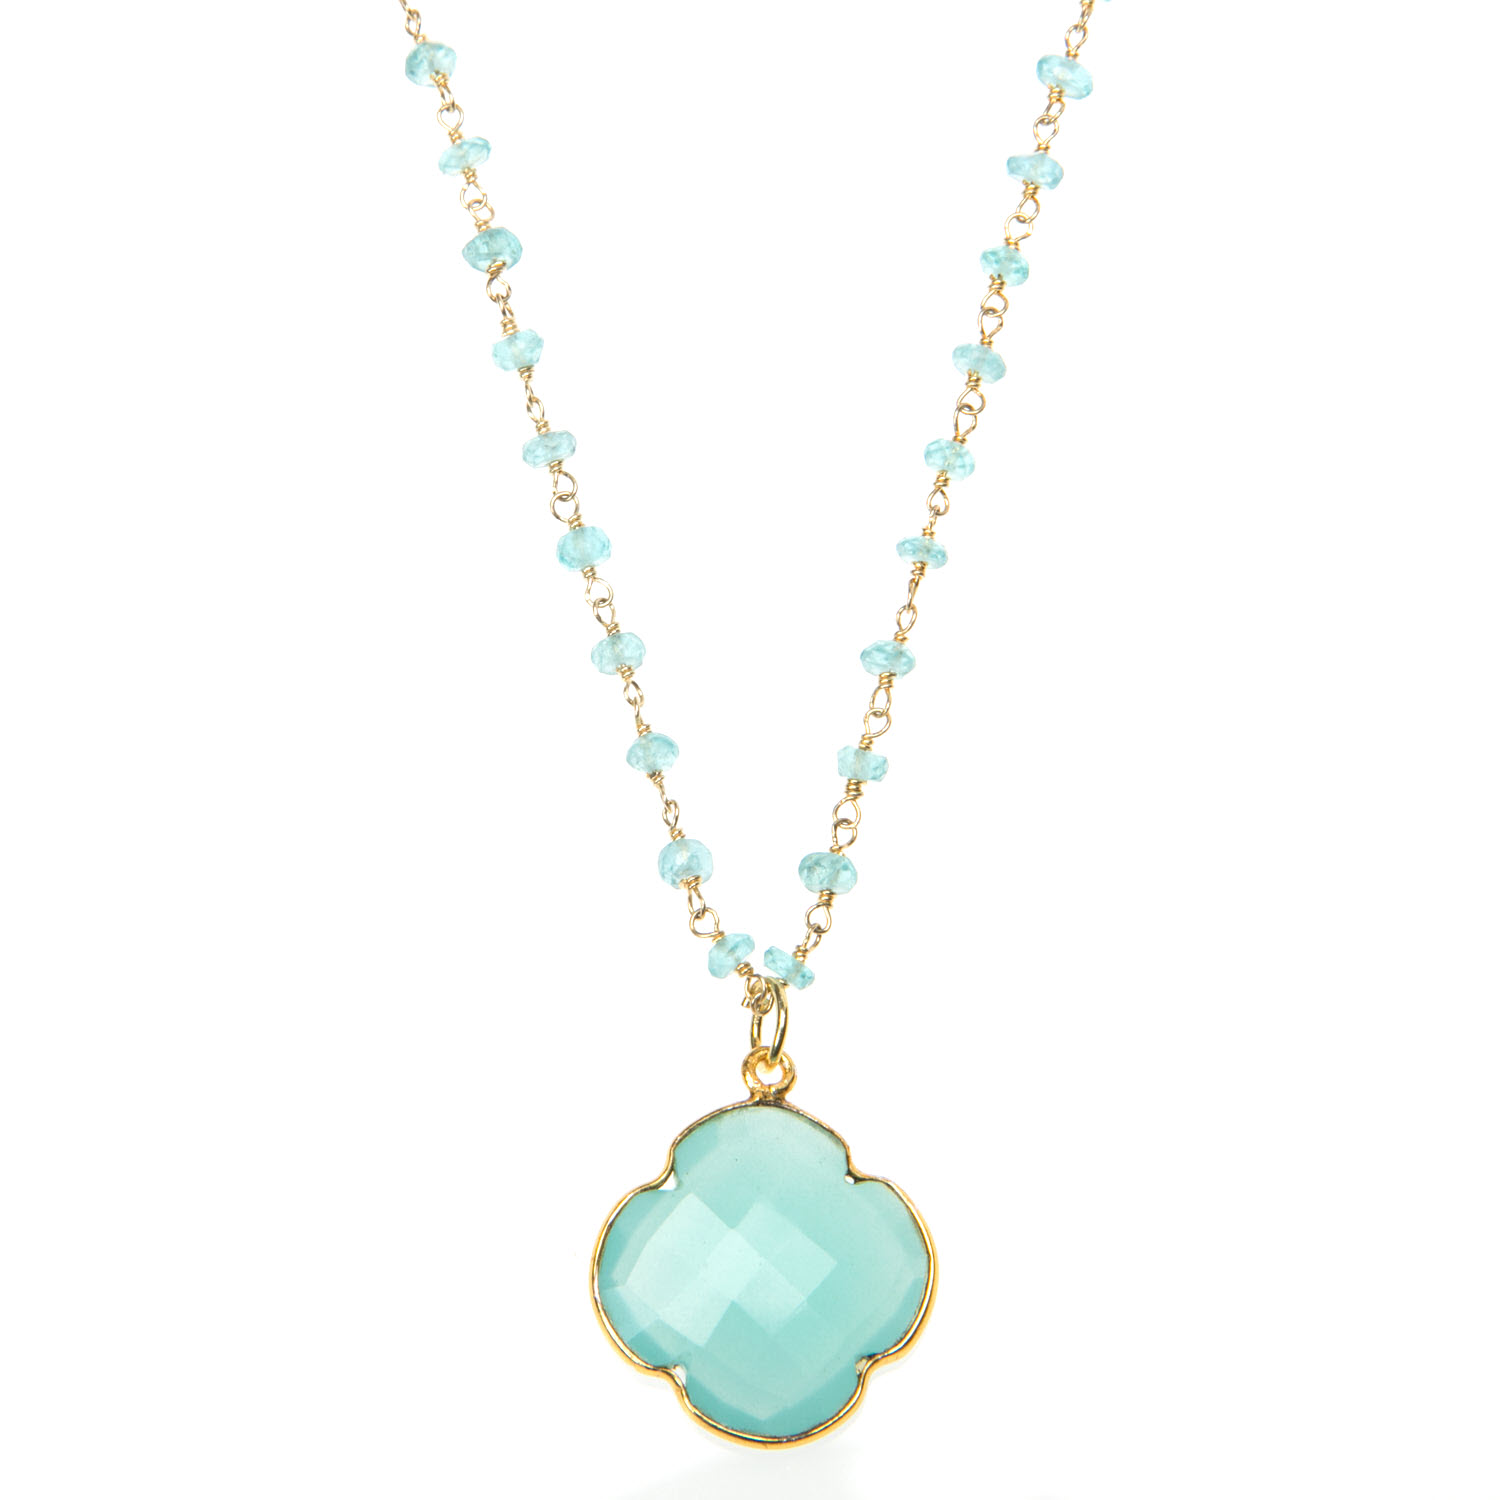 Aqua Blue Chalcedony and Apatite gemstone Pendant